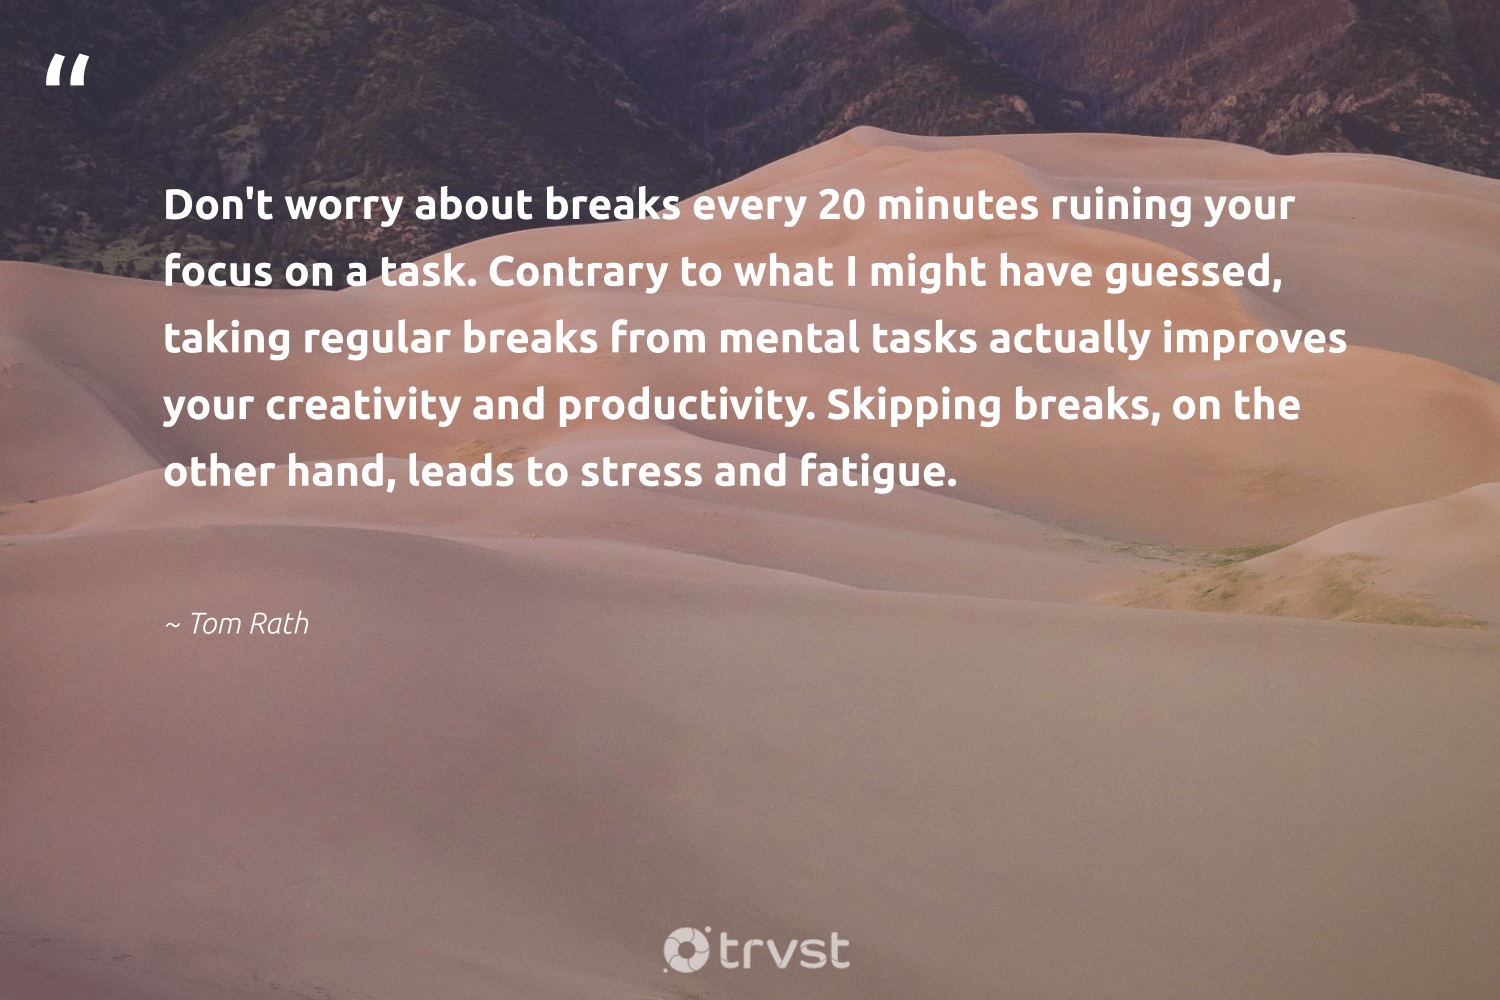 """""""Don't worry about breaks every 20 minutes ruining your focus on a task. Contrary to what I might have guessed, taking regular breaks from mental tasks actually improves your creativity and productivity. Skipping breaks, on the other hand, leads to stress and fatigue.""""  - Tom Rath #trvst #quotes #productivity #focus #creativity #mostwontiwill #motivation #learning #begreat #dogood #timemanagement #success"""